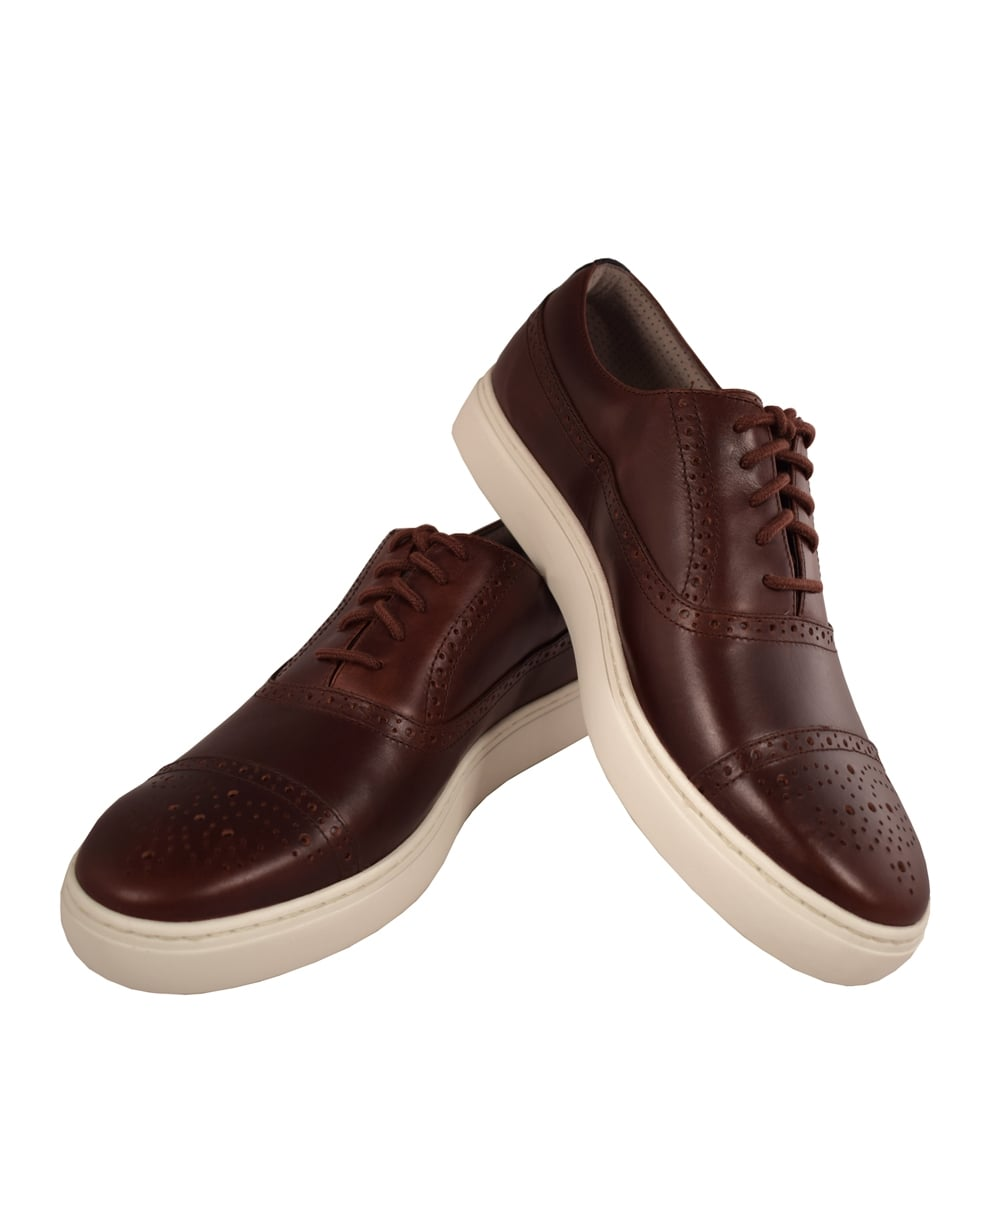 Paul Smith Brown Shoes Sale